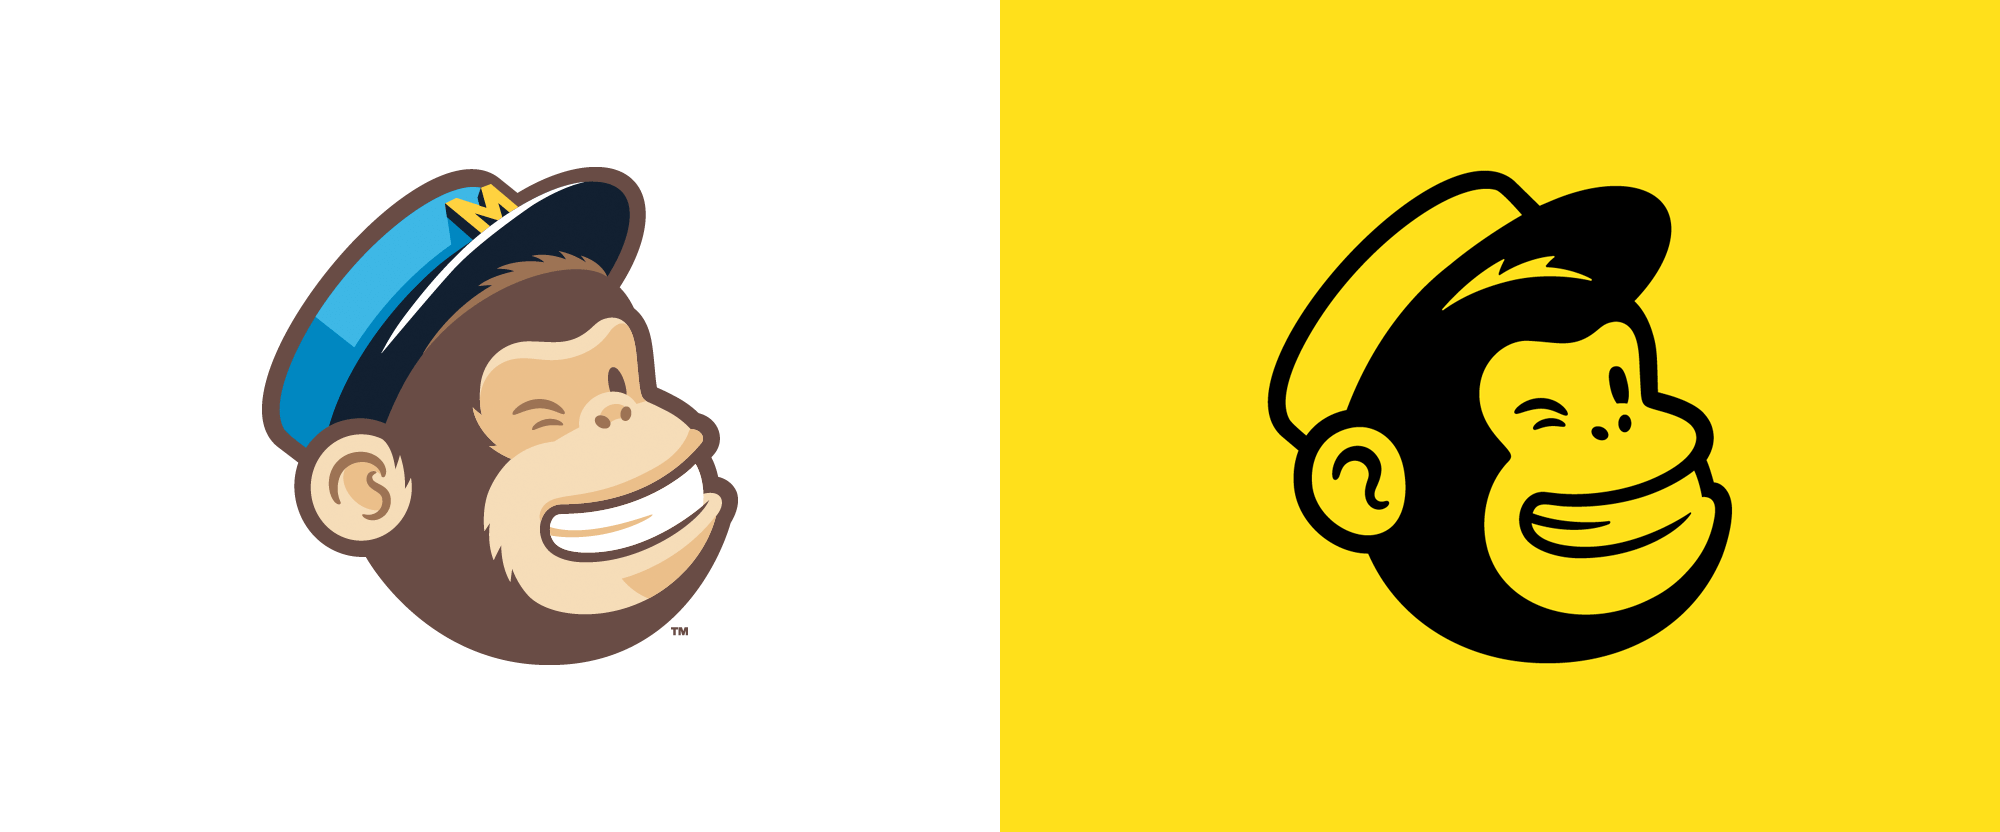 mailchimp brand storytelling examples